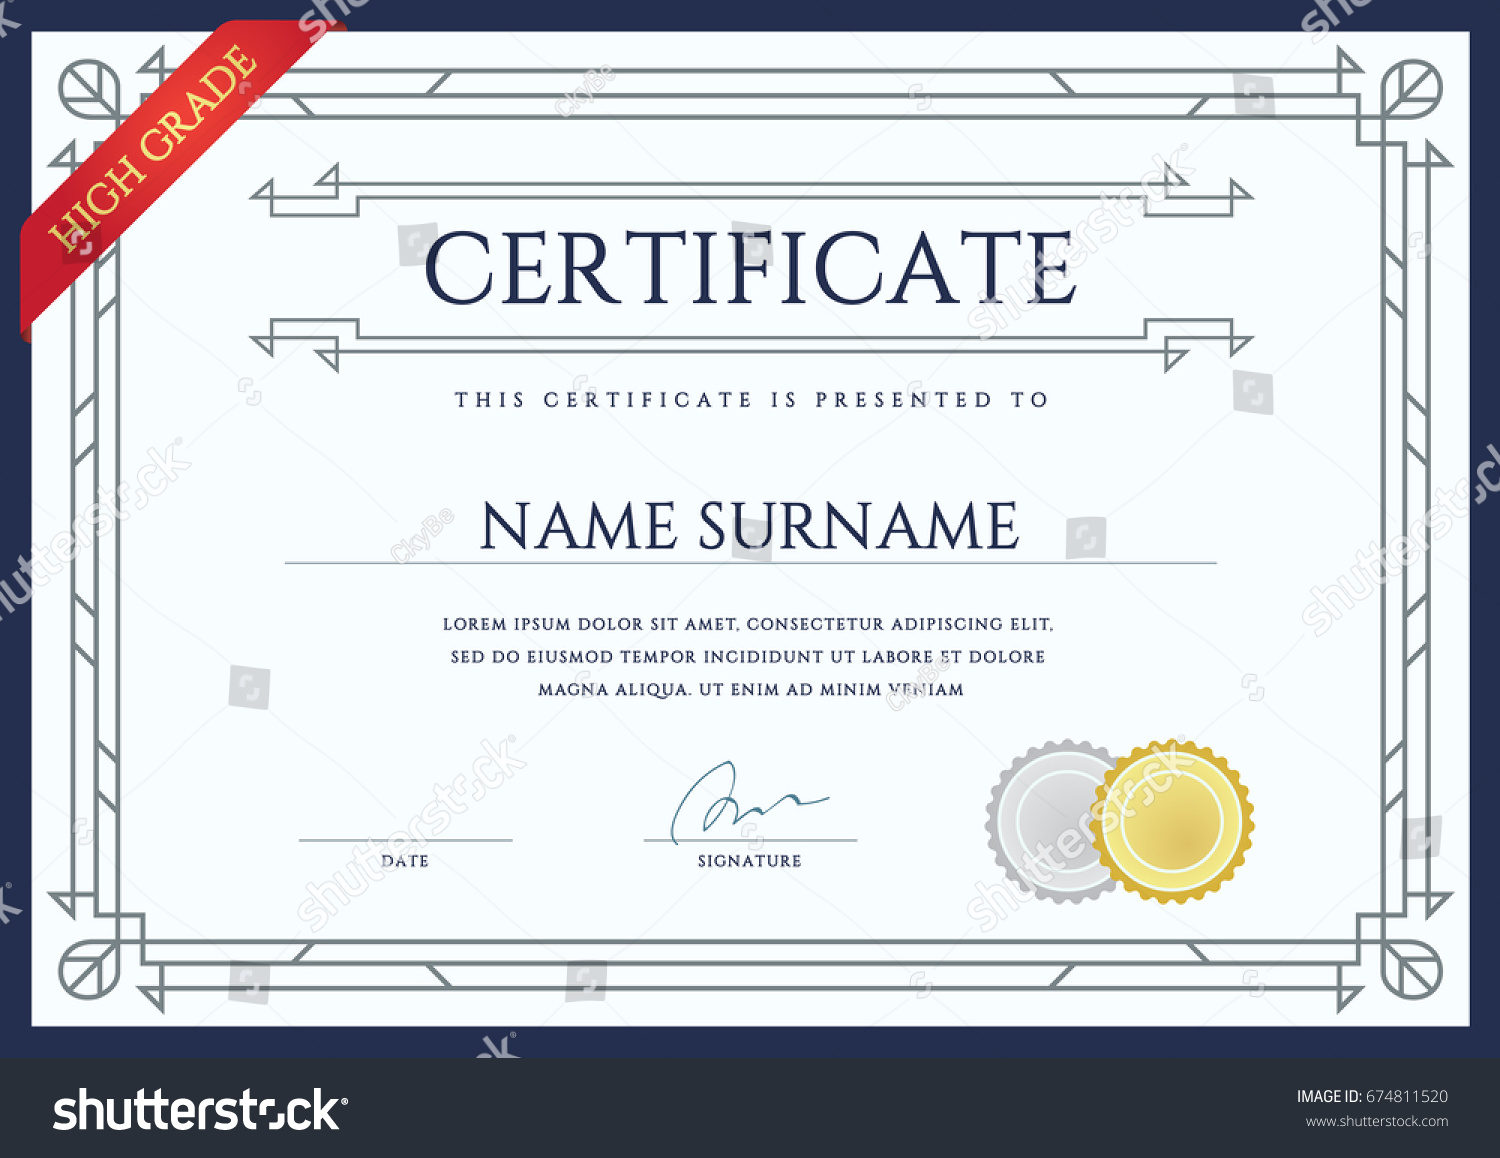 raster certificate diploma template ready print stock illustration  raster certificate or diploma template ready for print or use it on the internet